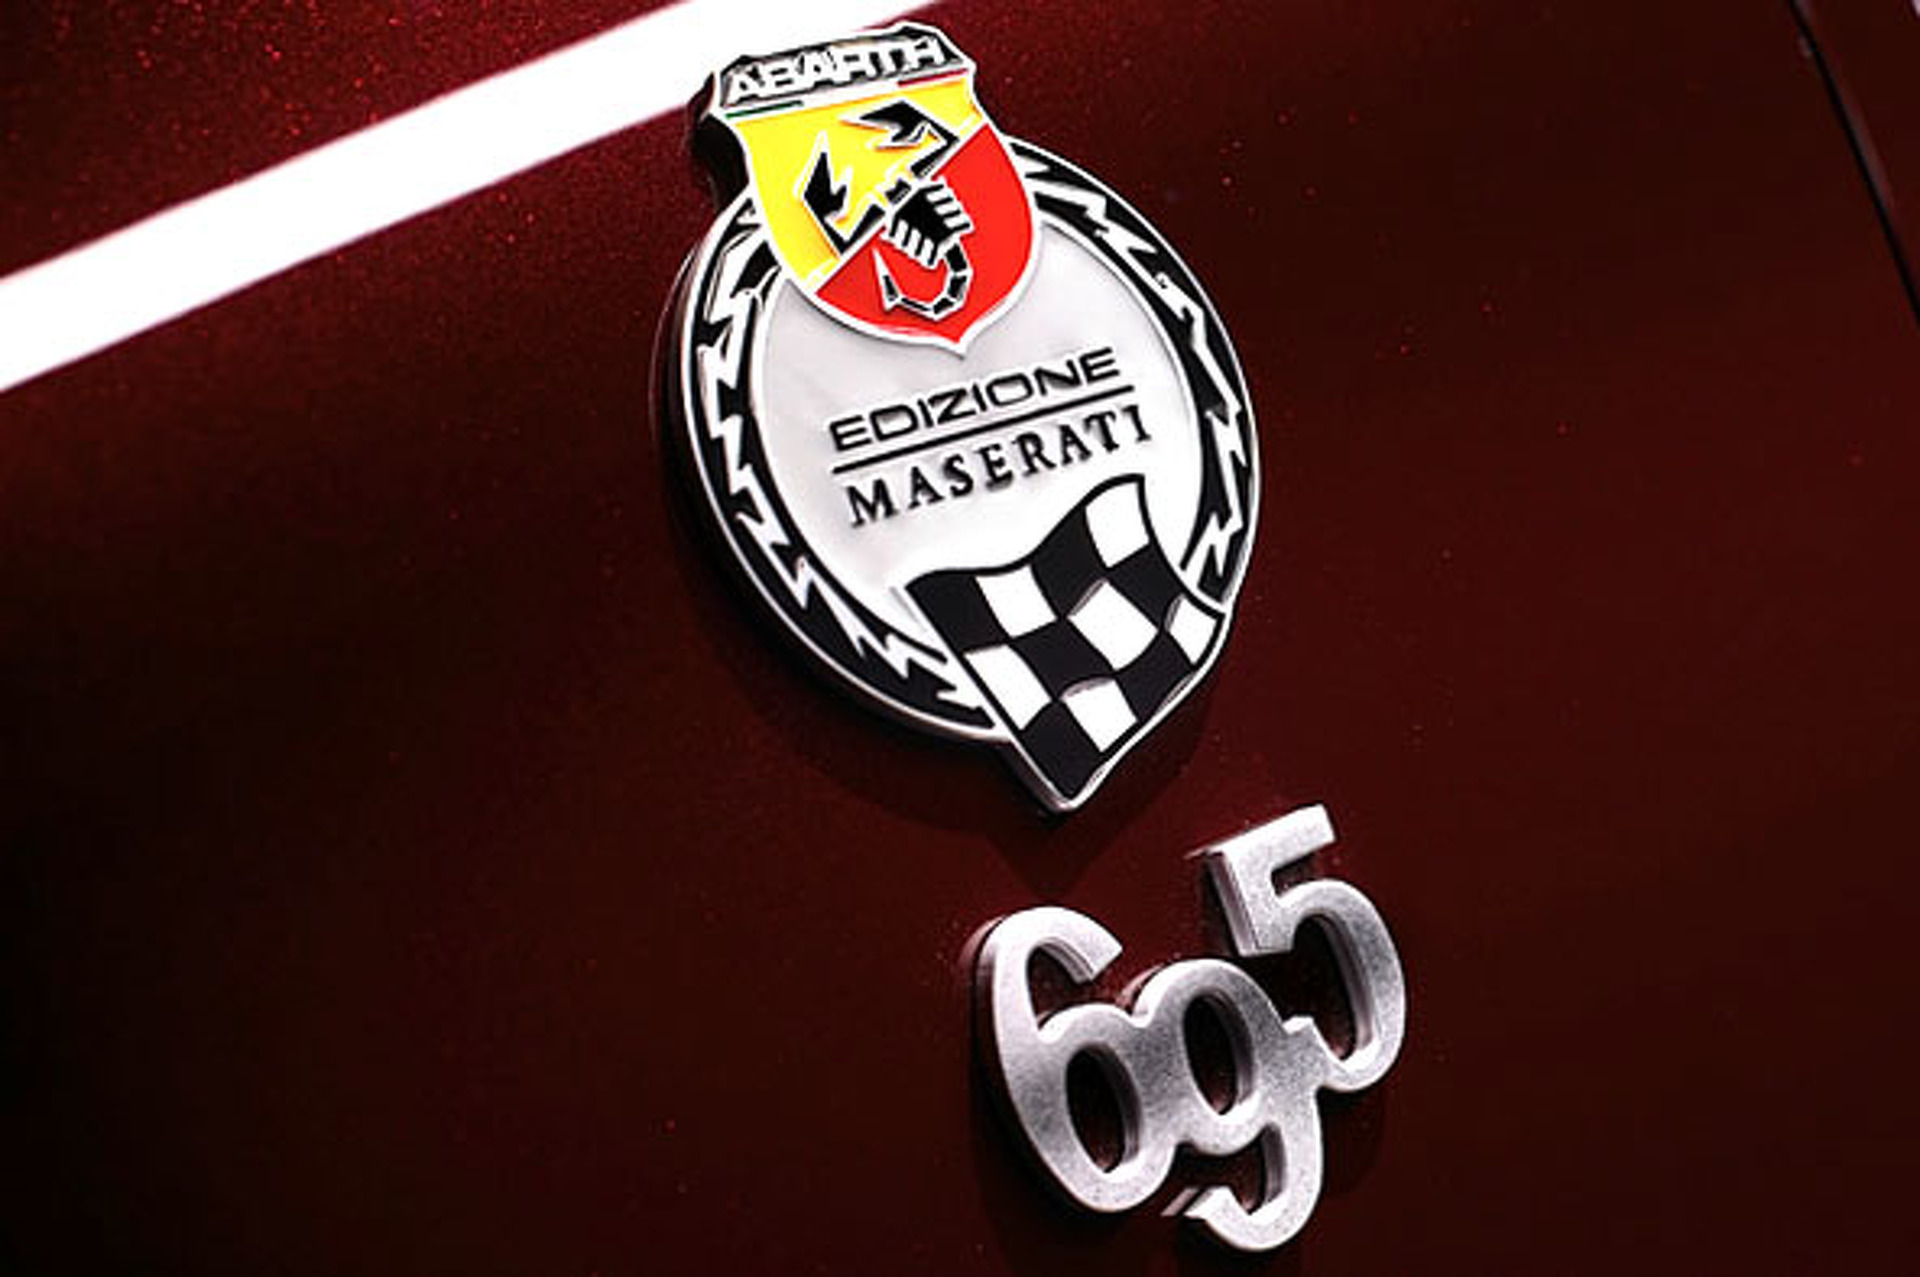 Unveiled: Abarth 695 Maserati Edition